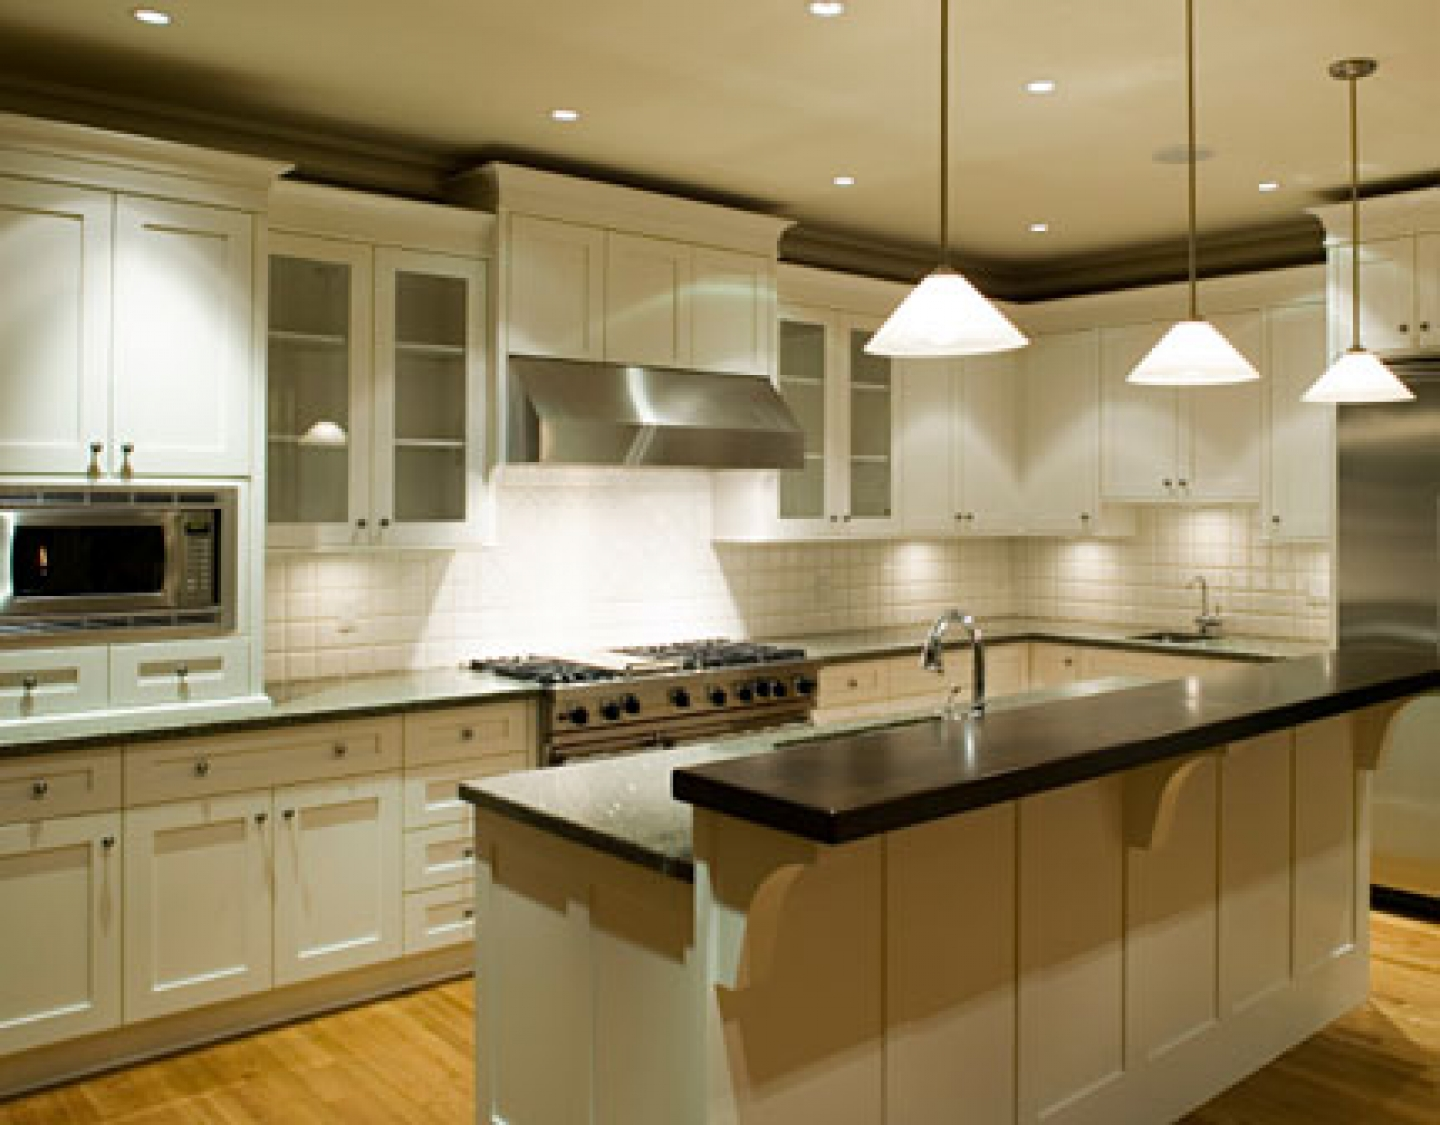 White Kitchen Cabinets Stylize Your House  Cabinets Direct. What Kind Of Paint For Kitchen Cabinets. Mini Kitchen Cabinets. Cheap Knobs For Kitchen Cabinets. Light Colored Kitchen Cabinets. Direct Buy Kitchen Cabinets. Martha Stewart Kitchen Cabinets. Kitchen Steel Cabinets. Under Cabinet Kitchen Tv